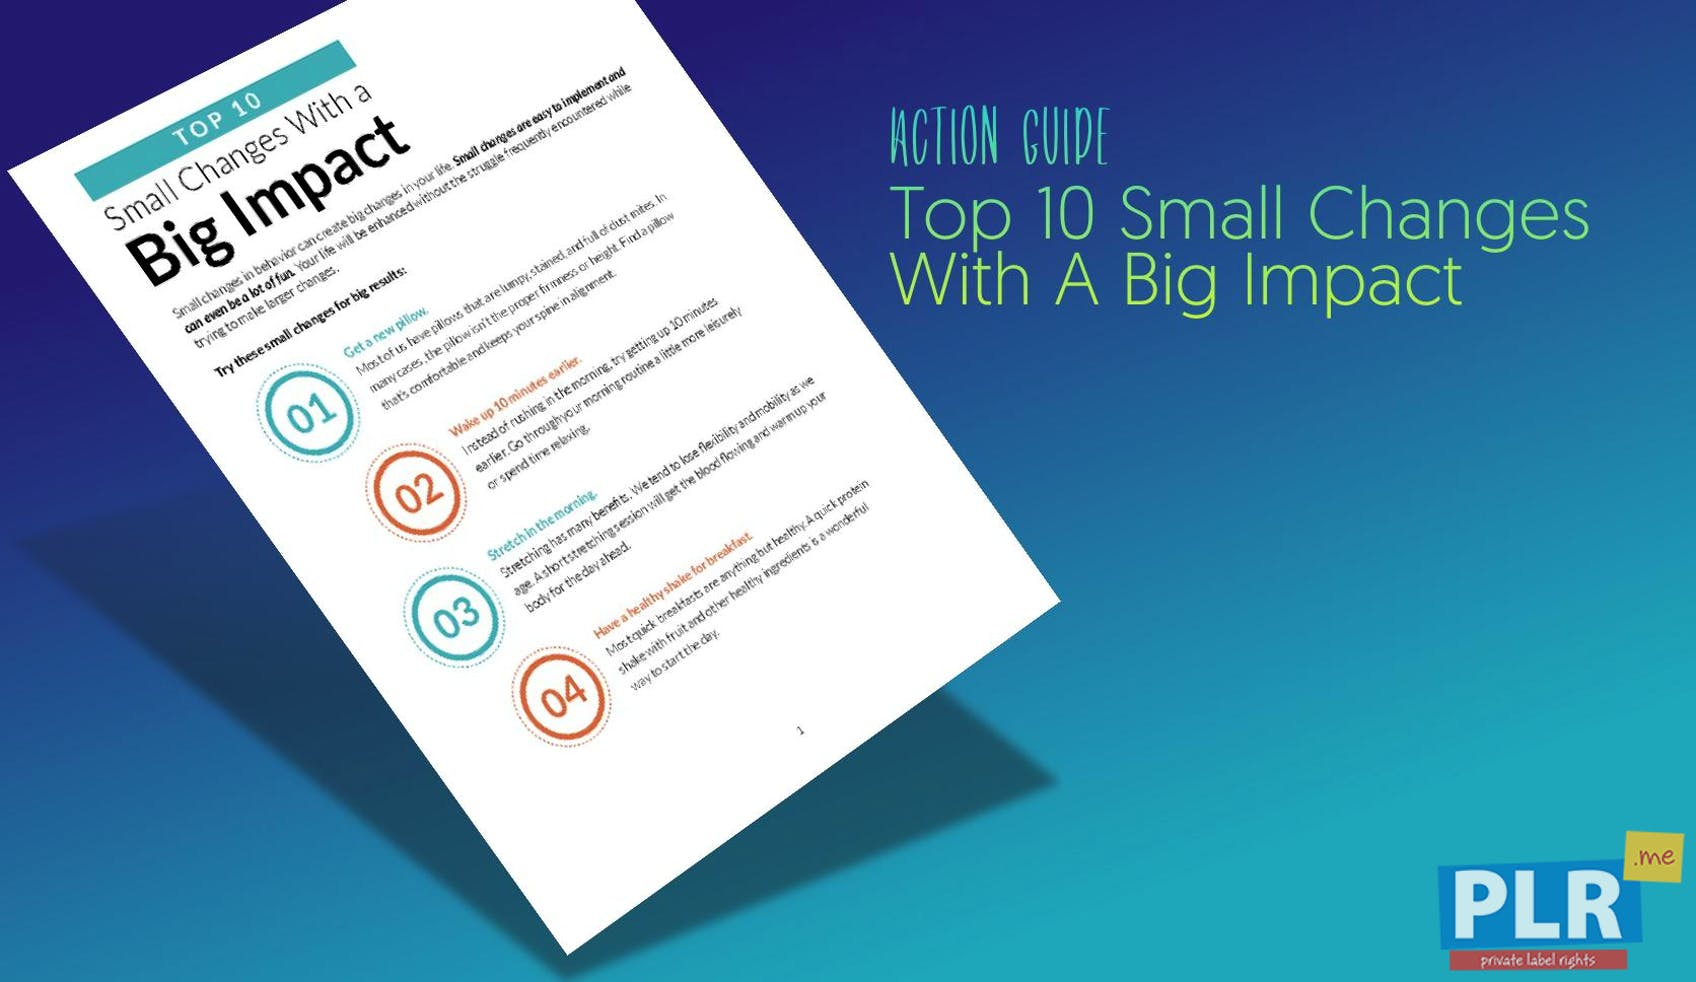 Top 10 Small Changes With A Big Impact